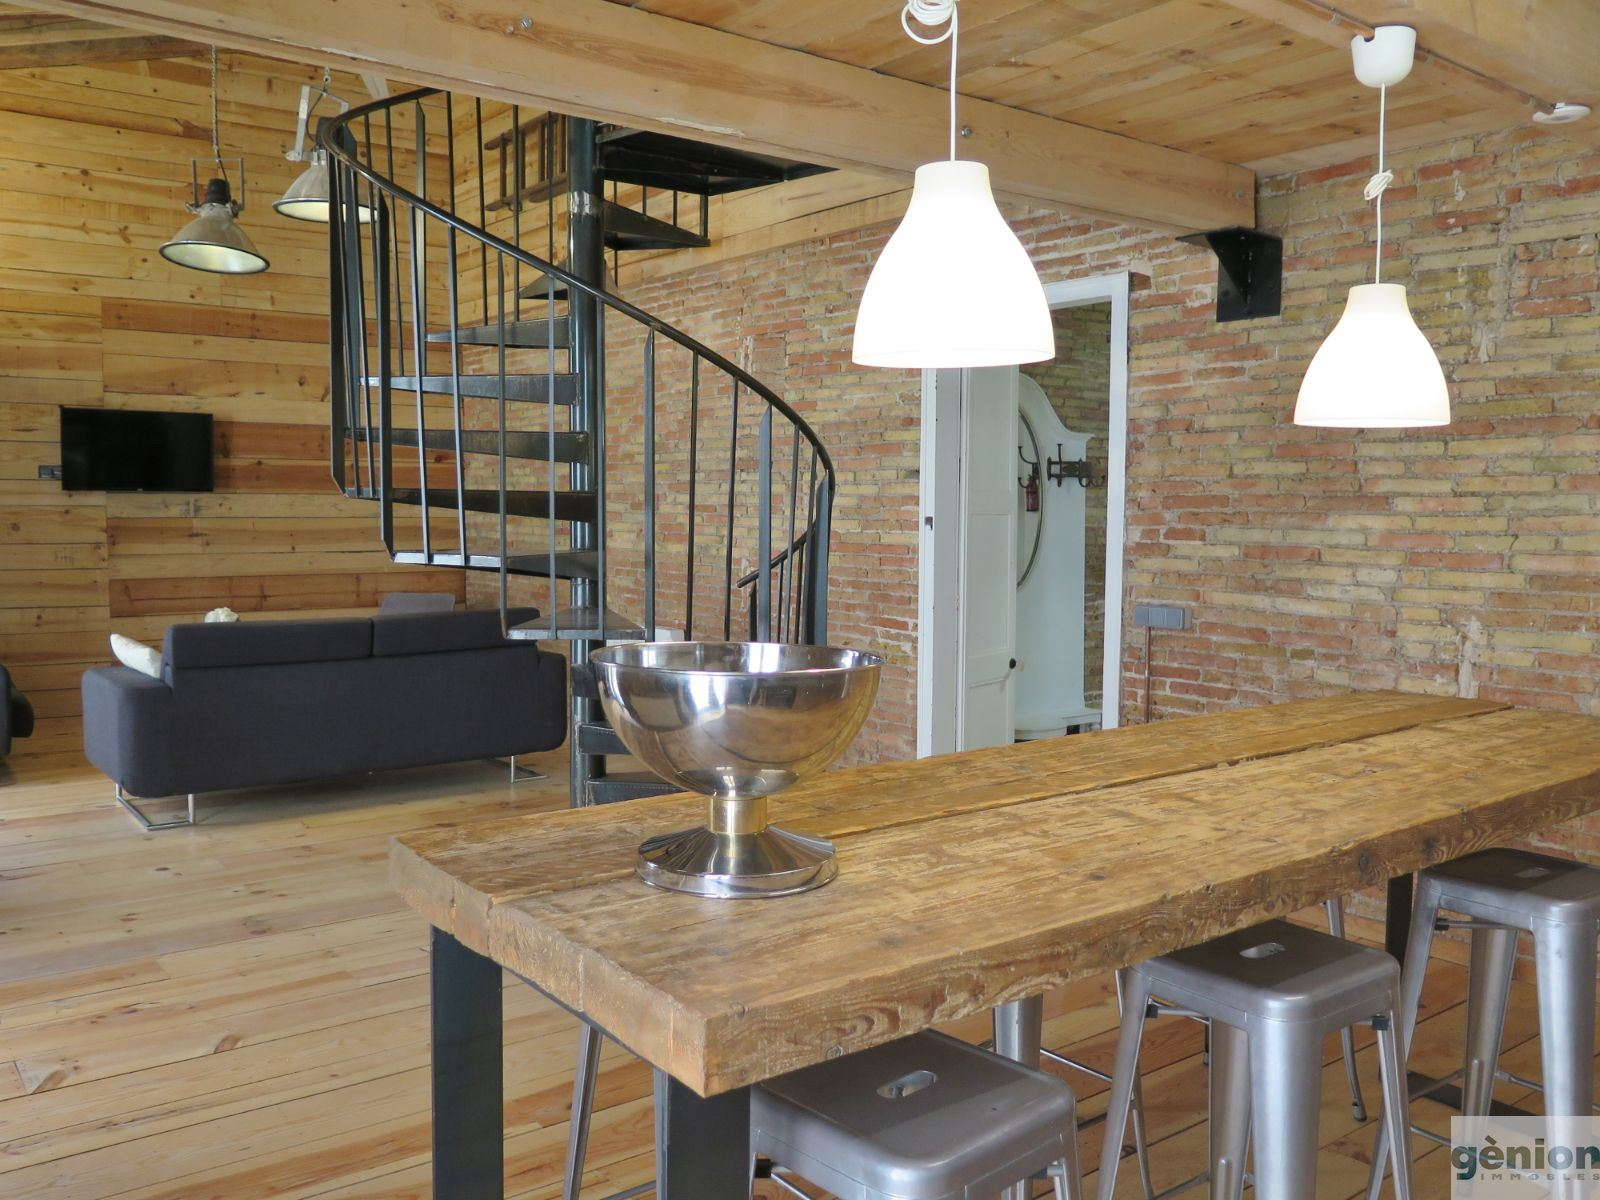 204 m² TWO-STOREY ATTIC APARTMENT IN GIRONA'S BARRI VELL (OLD QUARTER). FULLY REFURBISHED HISTORIC BUILDING